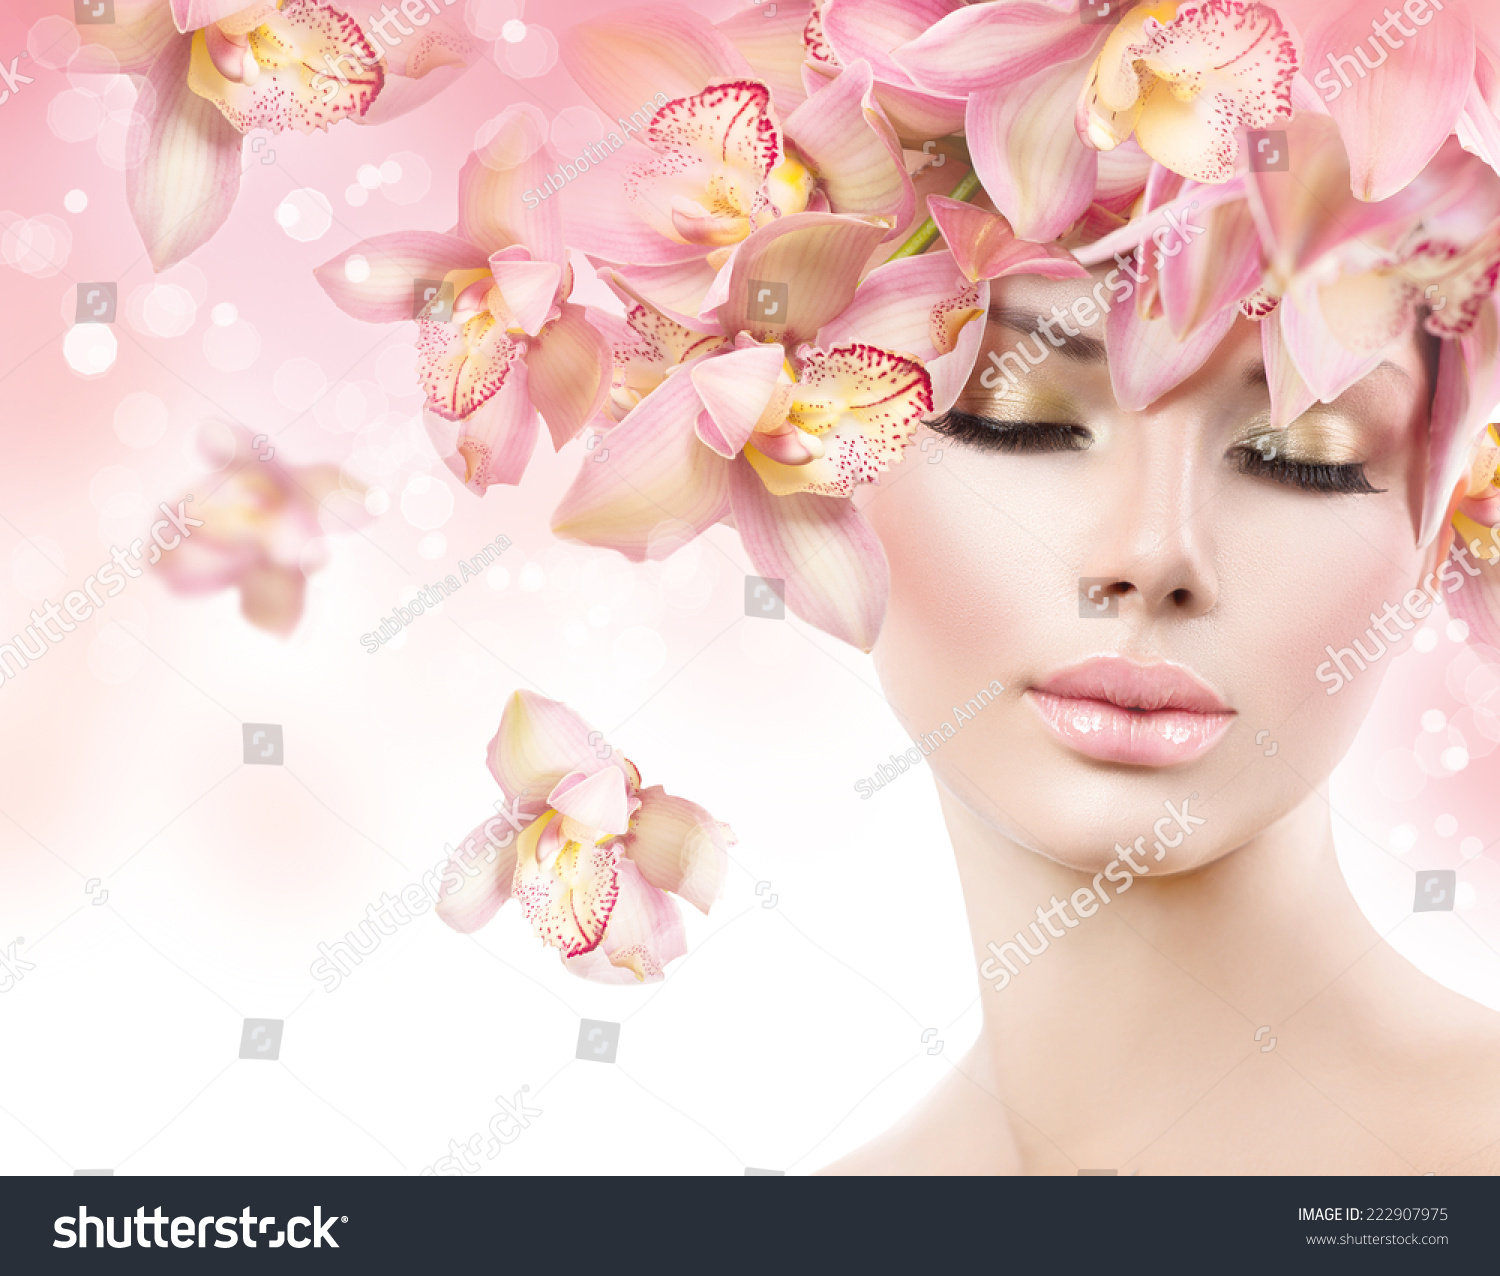 Fashion Beauty Model Girl Orchid Flowers Stock Photo